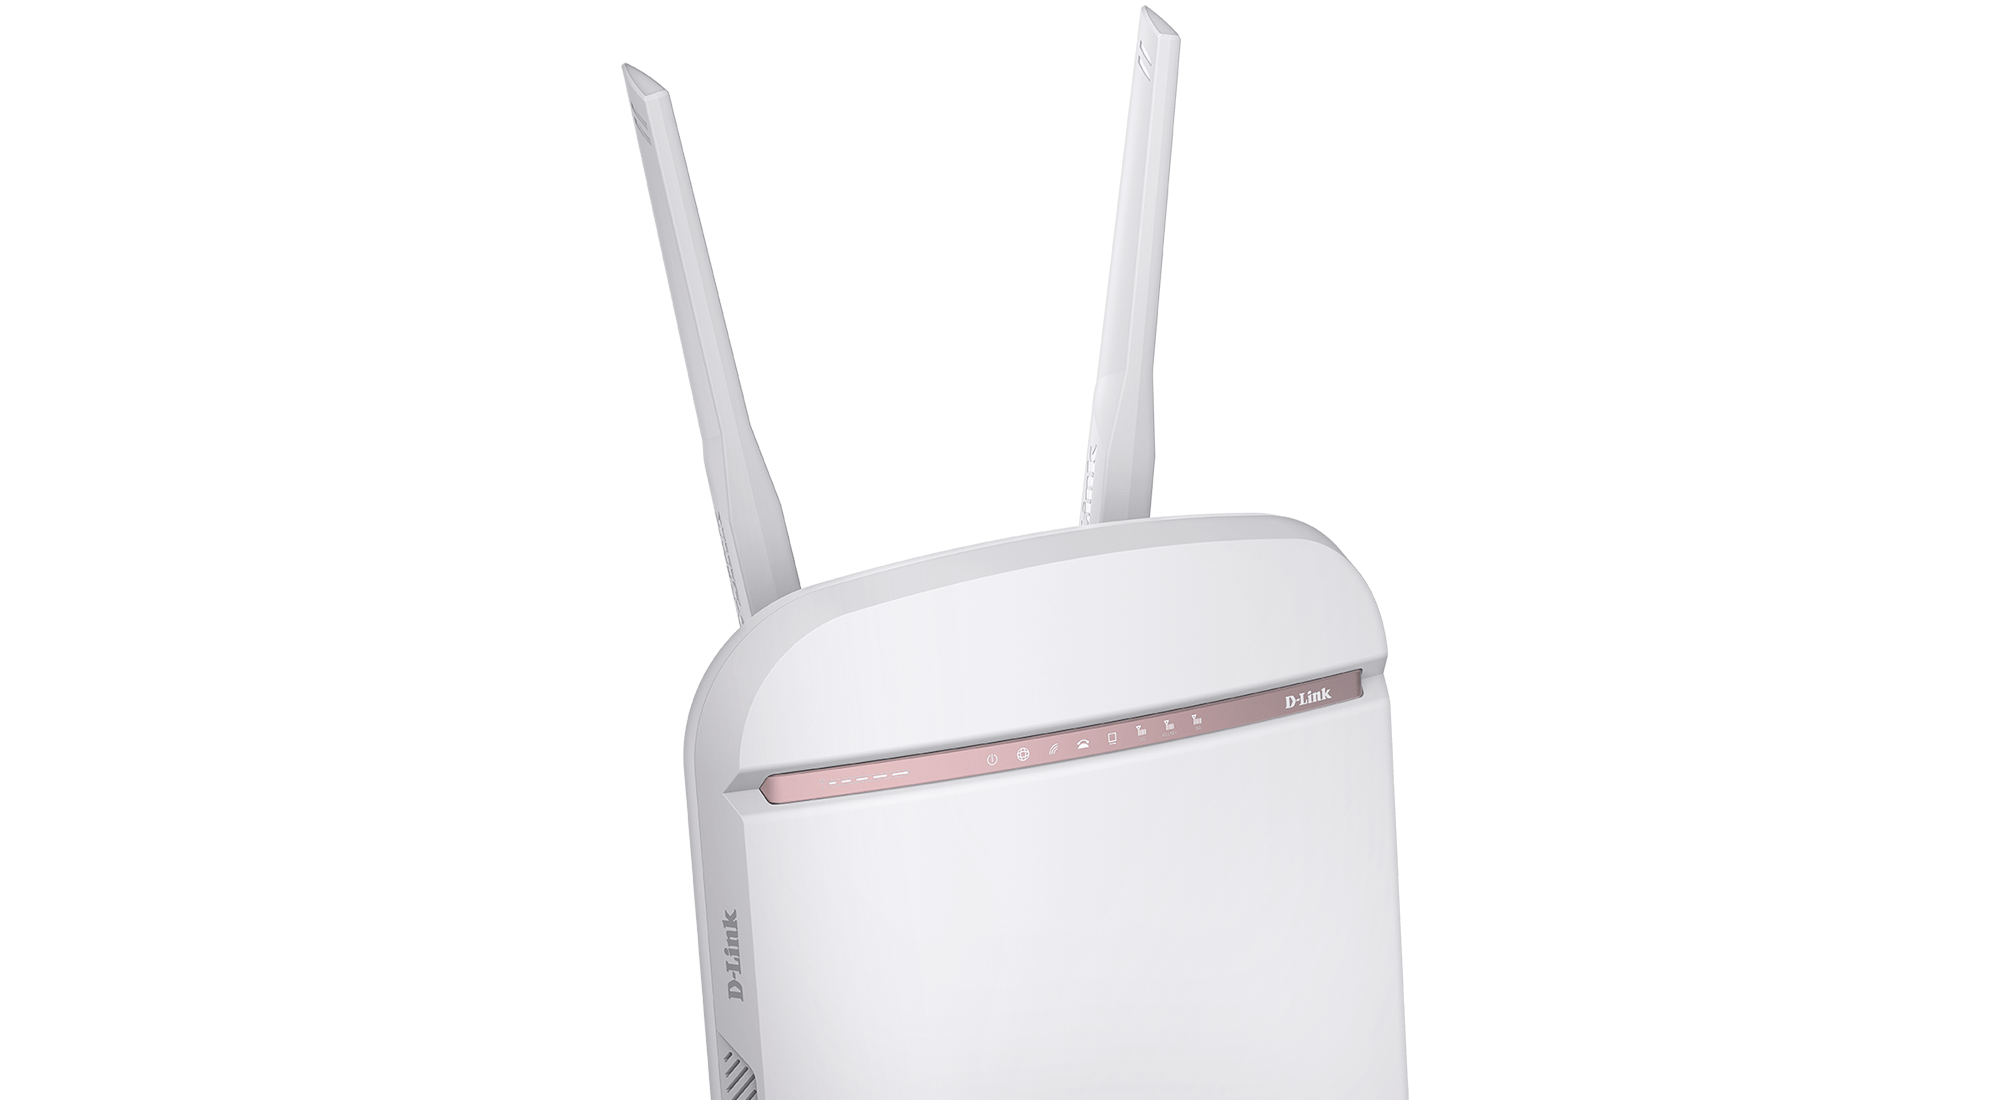 DWR-978 5G AC2600 Wi-Fi Router - front view